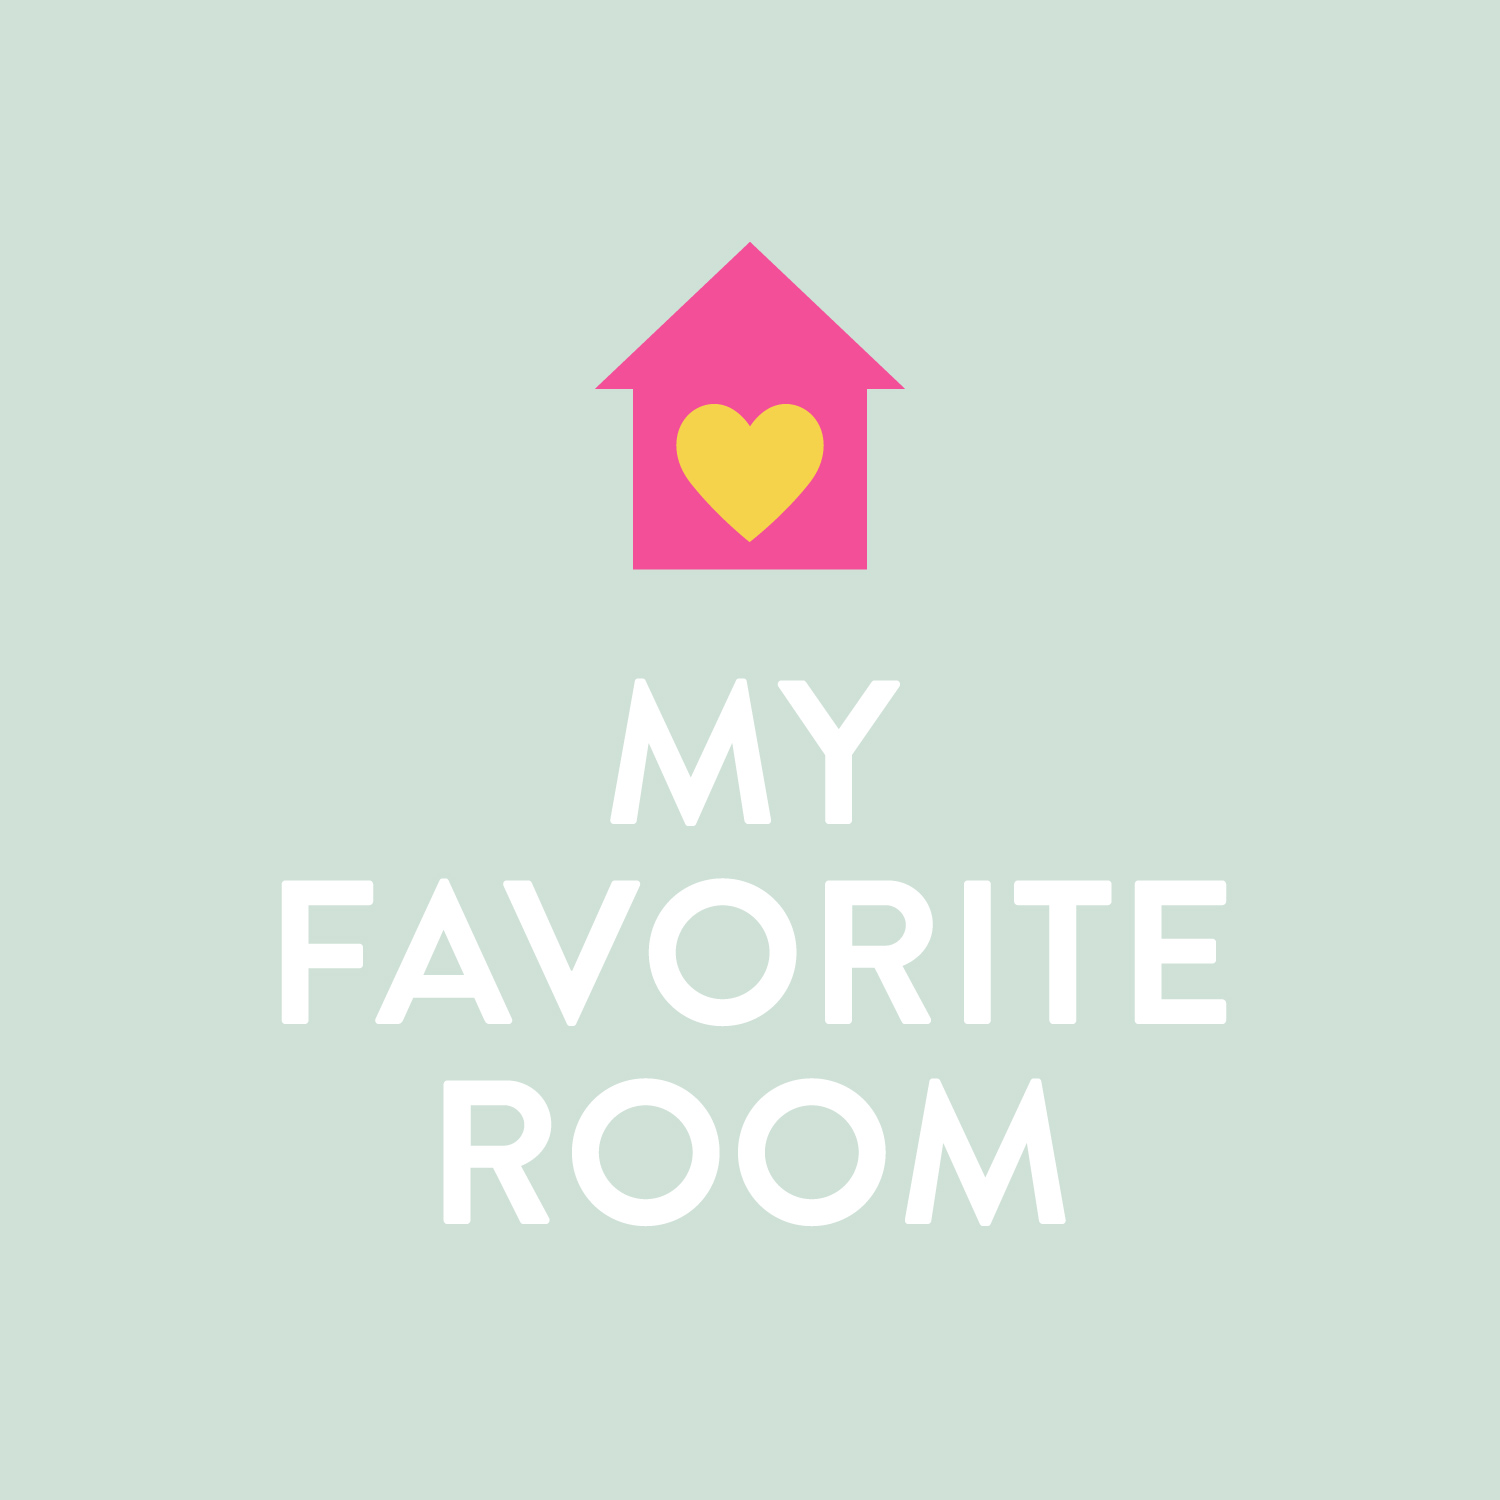 Learn what blogger Sarah Hearts' favorite room in her house is and more on her reader survey results.